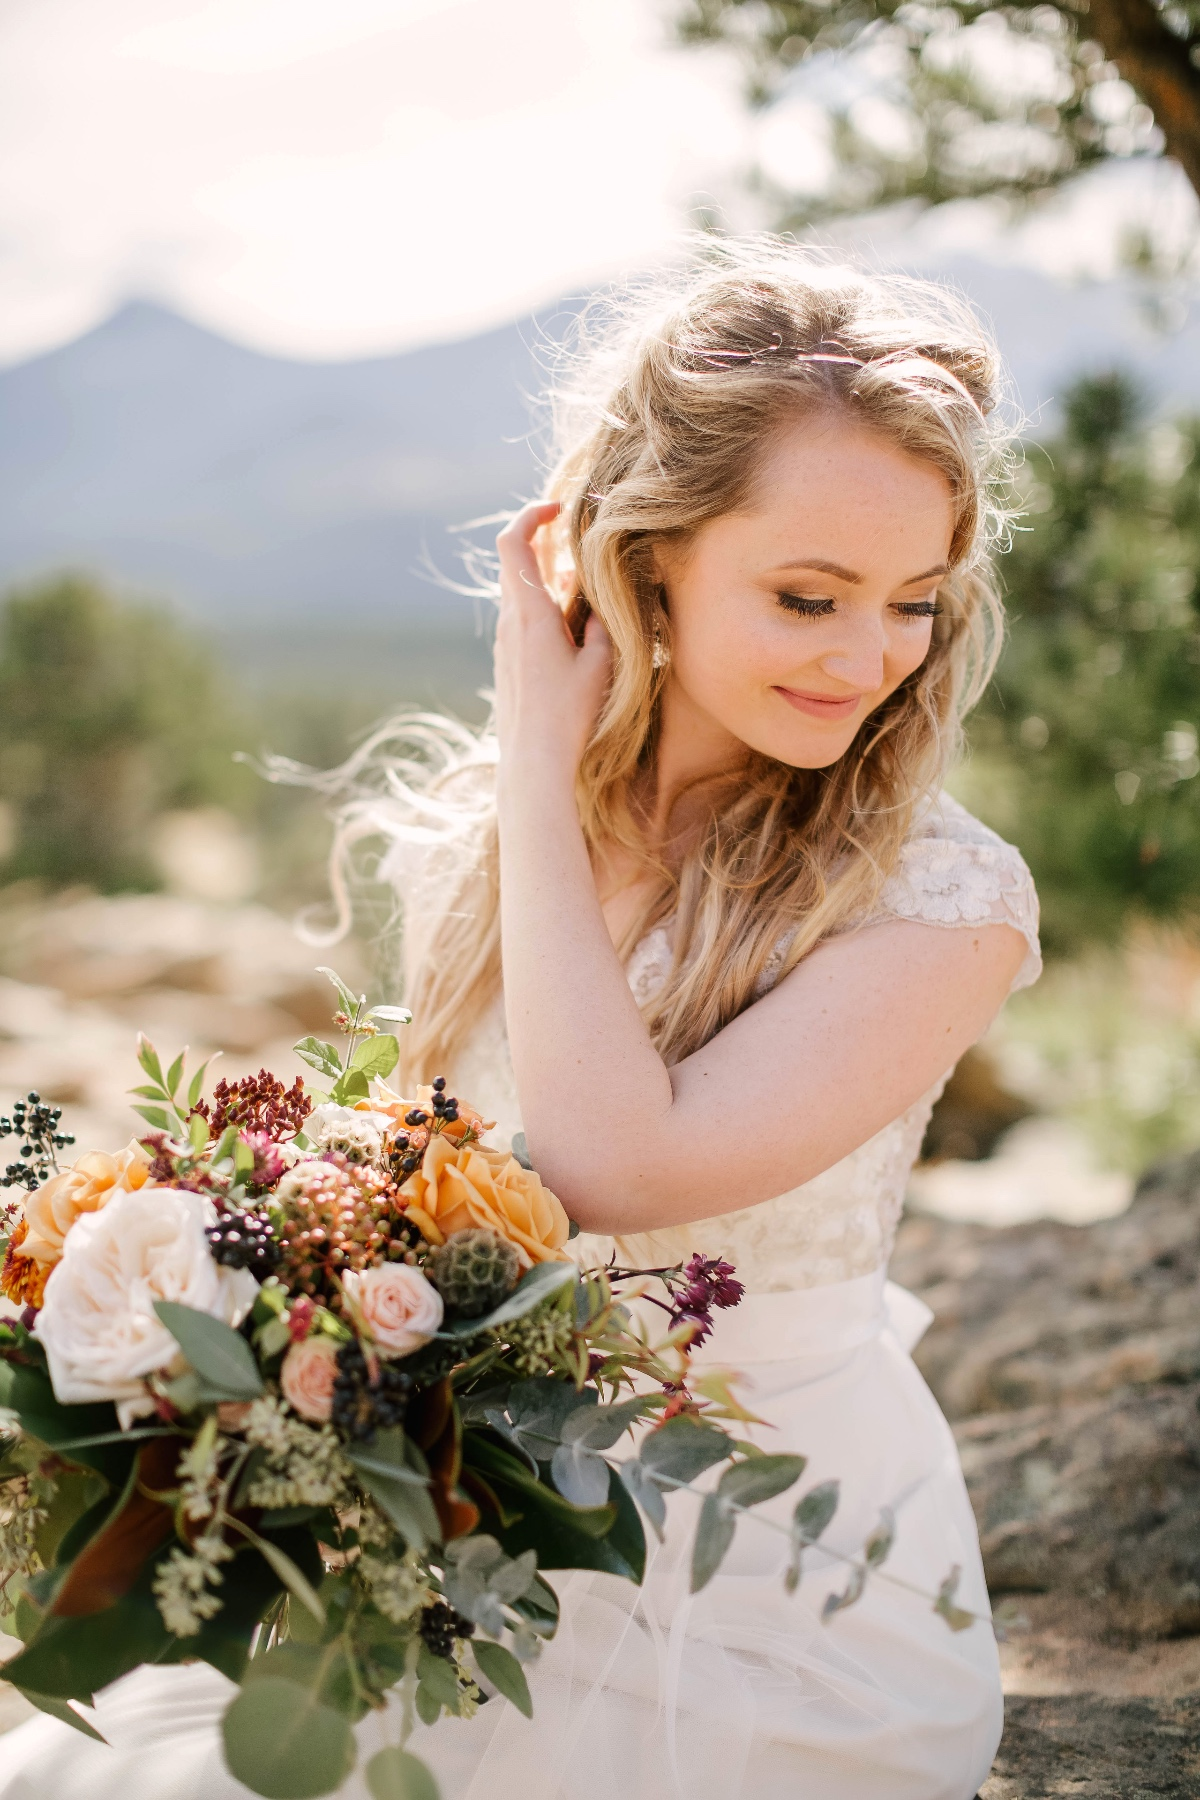 sweet and carefree bridal style